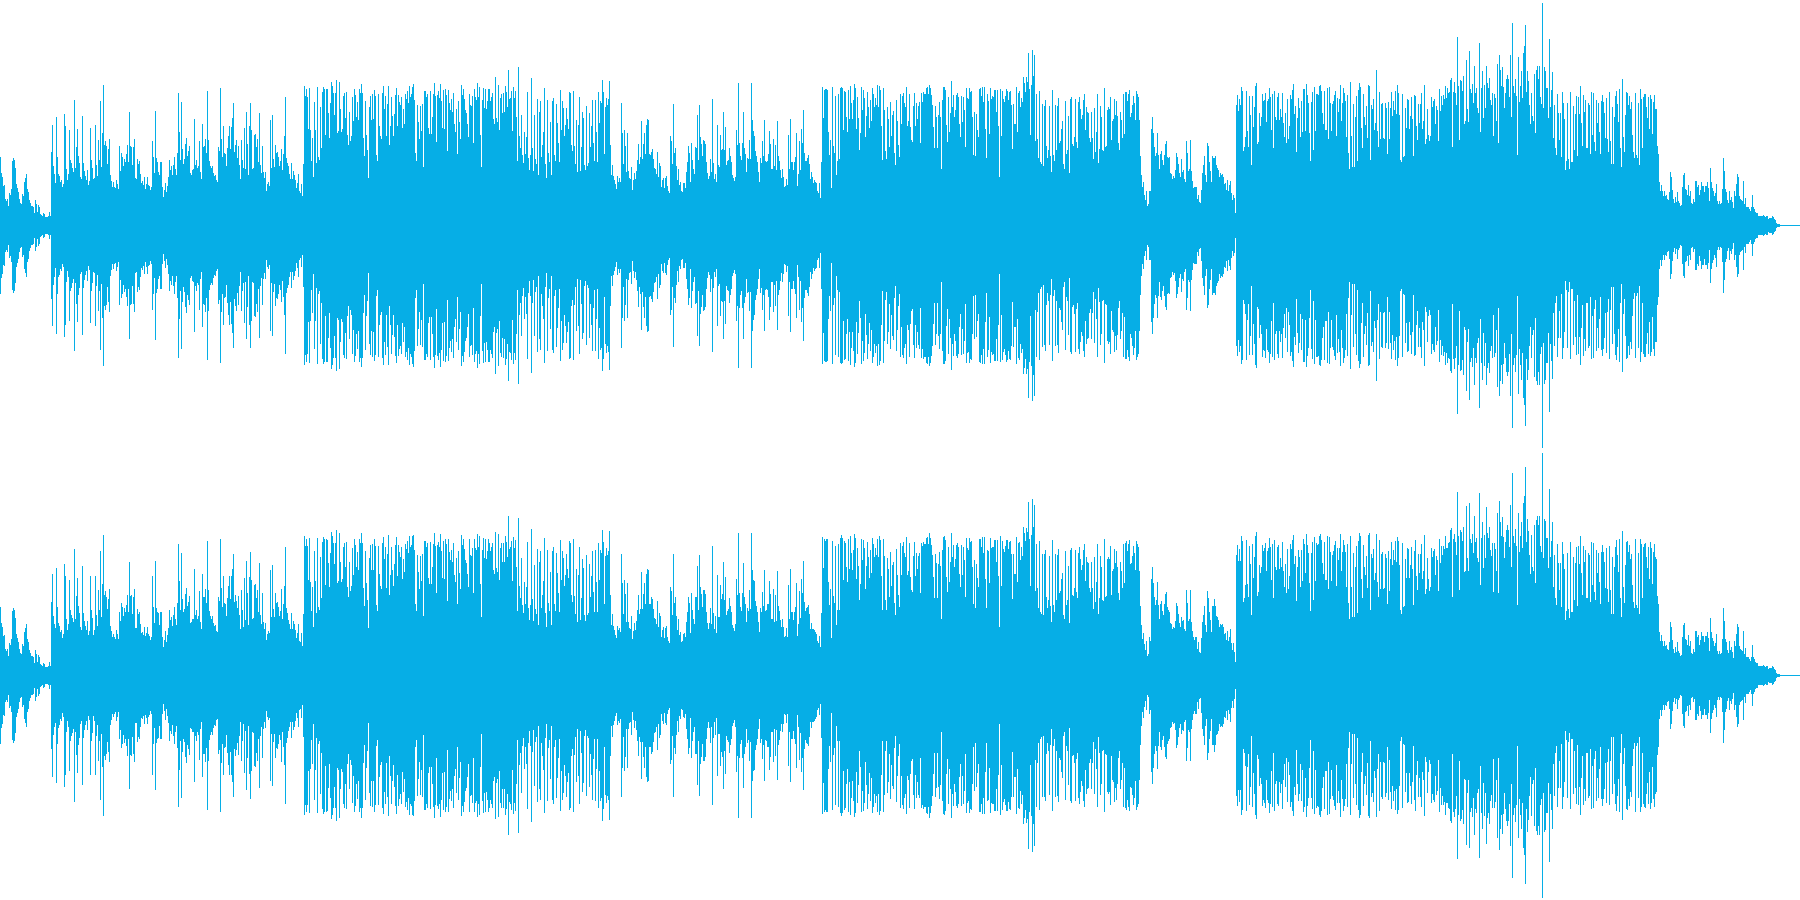 I want to push your back with 90's style rock!'s reproduced waveform